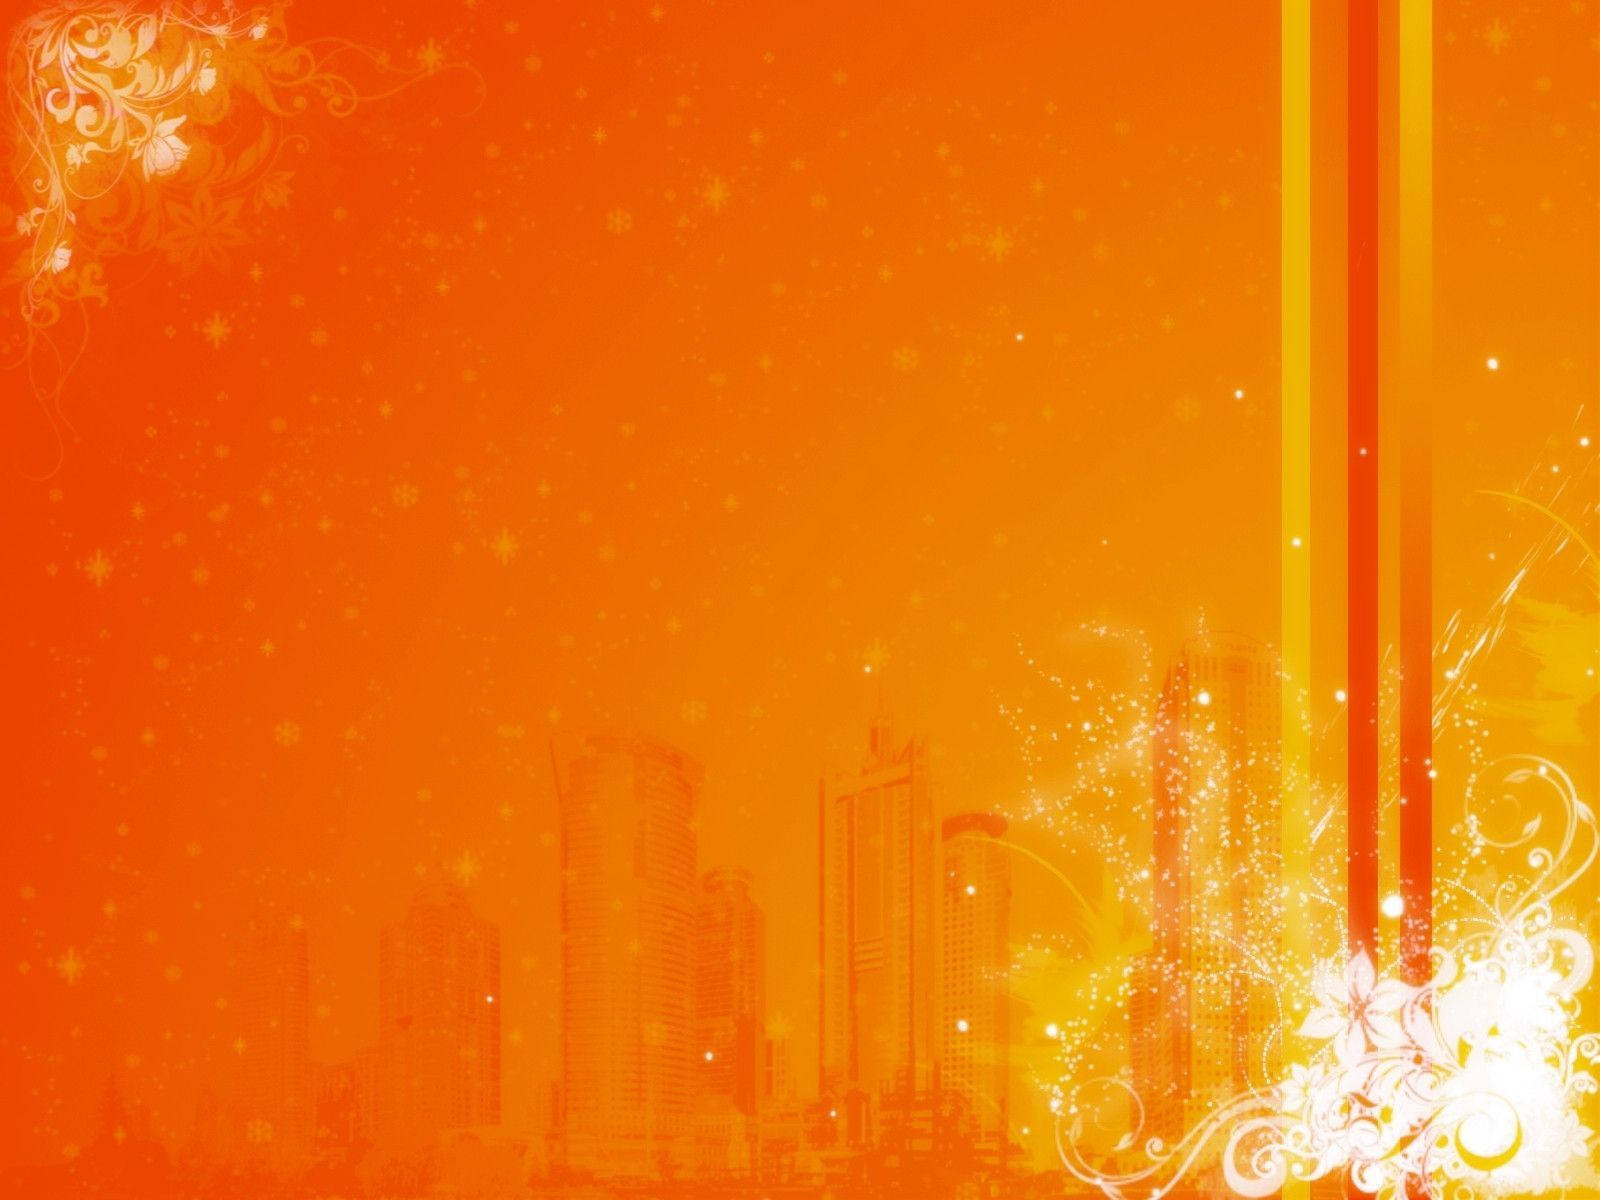 21+ Orange Backgrounds, Wallpapers, Images, Pictures | FreeCreatives